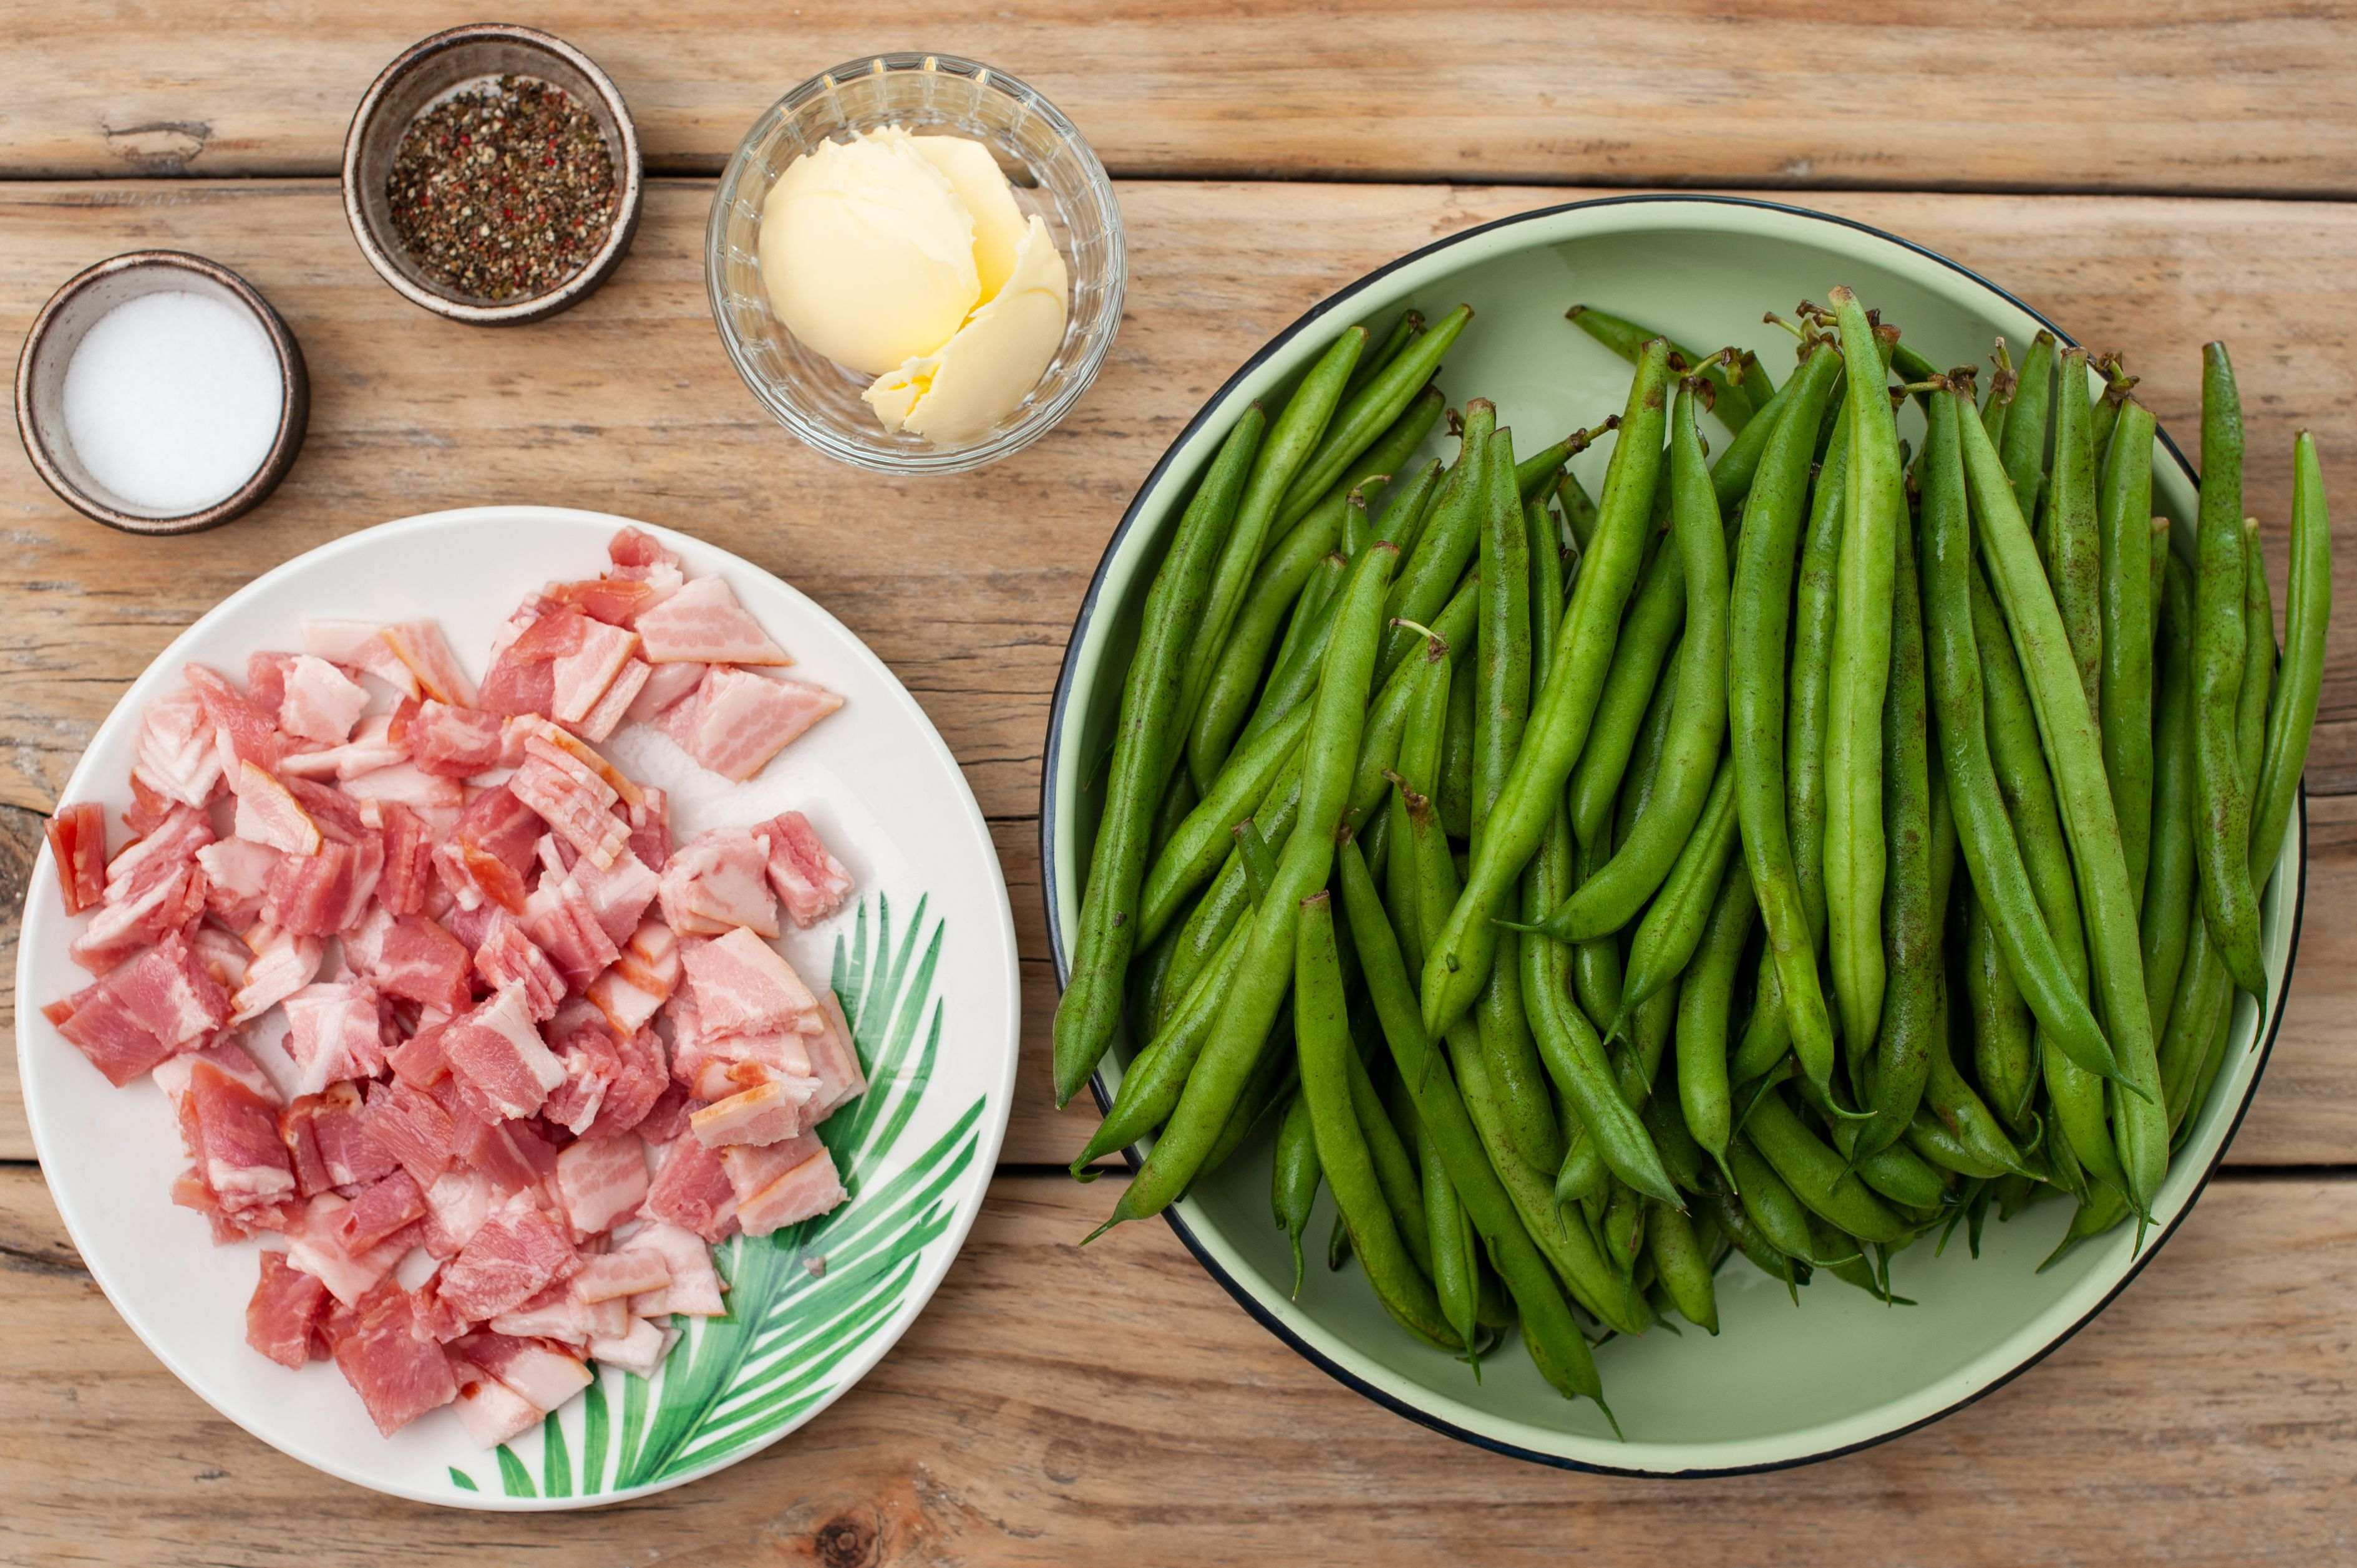 Ingredients for green bean salad